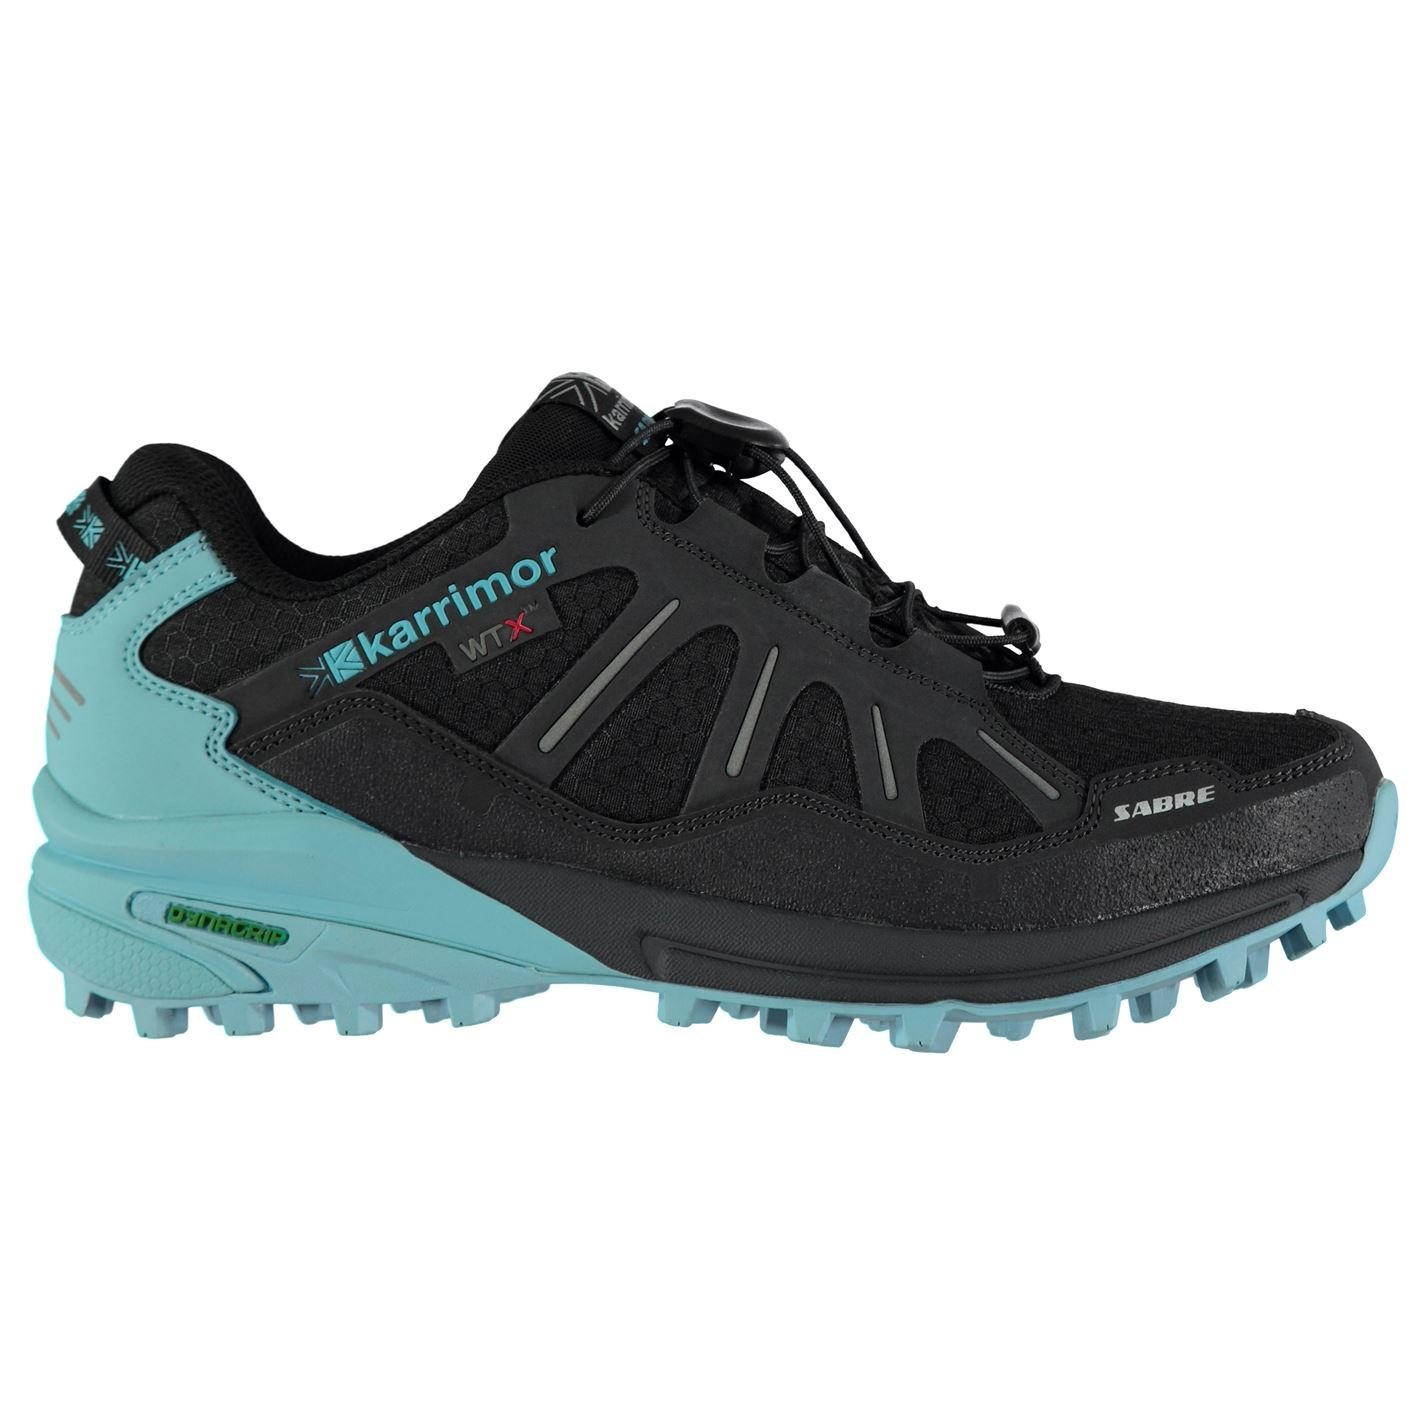 Karrimor Womens Sabre WTX Trainers Sneakers Low Tops Running Shoes Charcoal/Blue UK 6.5 (40)